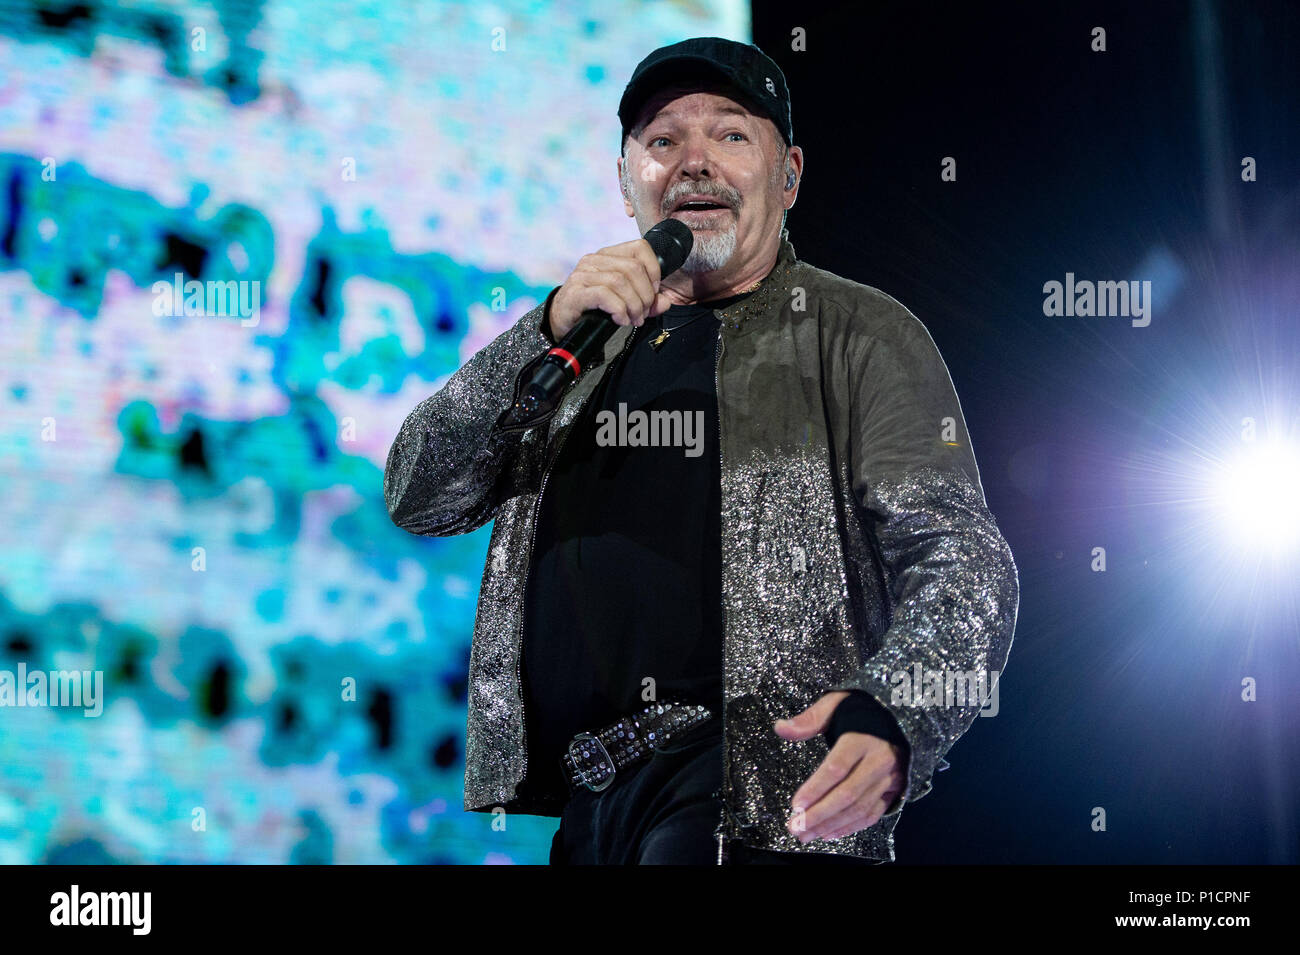 Rome, Italy. 11th June 2018. Italian singer and songwriter, Vasco Rossi performing live on stage his 'Vasco non stop tour 2018' at Olympic Stadium, Rome, Italy on 11 June 2018. Photo by Giuseppe Maffia Credit: Giuseppe Maffia/Alamy Live News Stock Photo